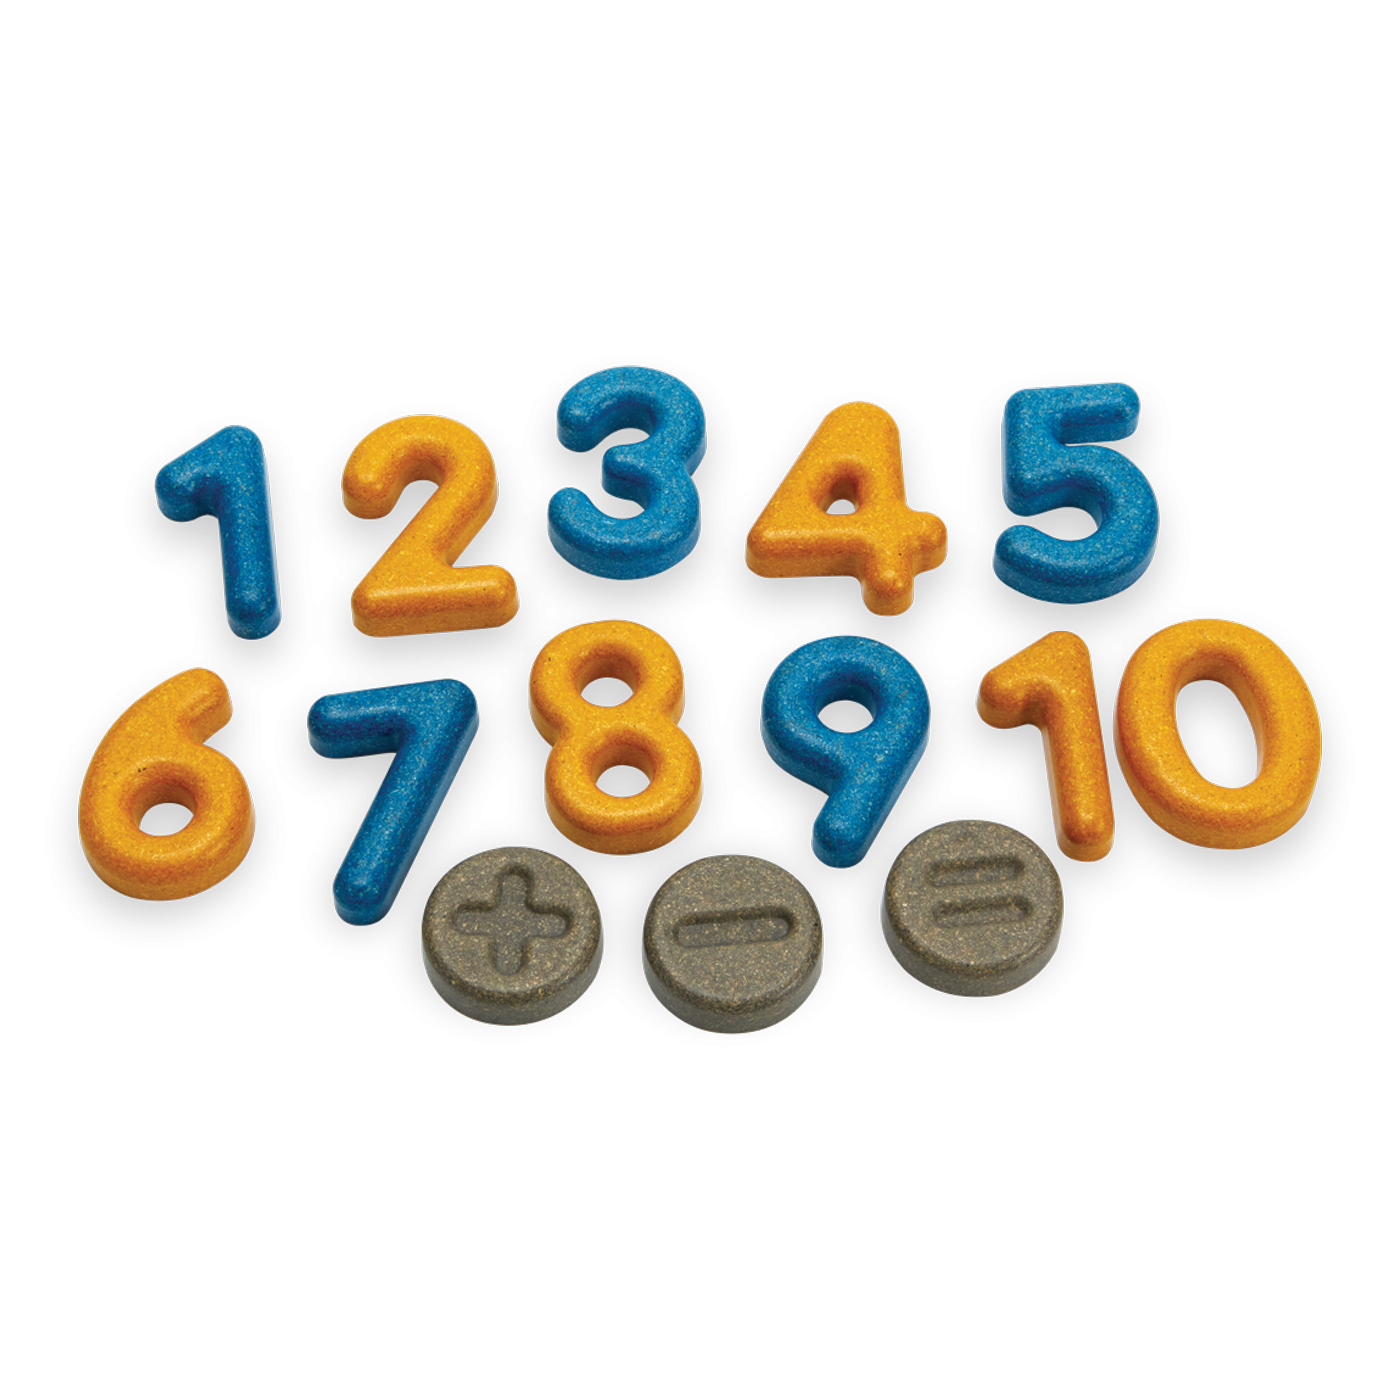 5405_PlanToys_NUMBERS_AND_SYMBOLS_Learning_and_Education_2yrs_Mathematical_Language_and_Communications_Coordination_Visual_Logical_Problem_Solving_Wooden_toys_Education_toys_Safety_Toys_Non-toxic_0.png